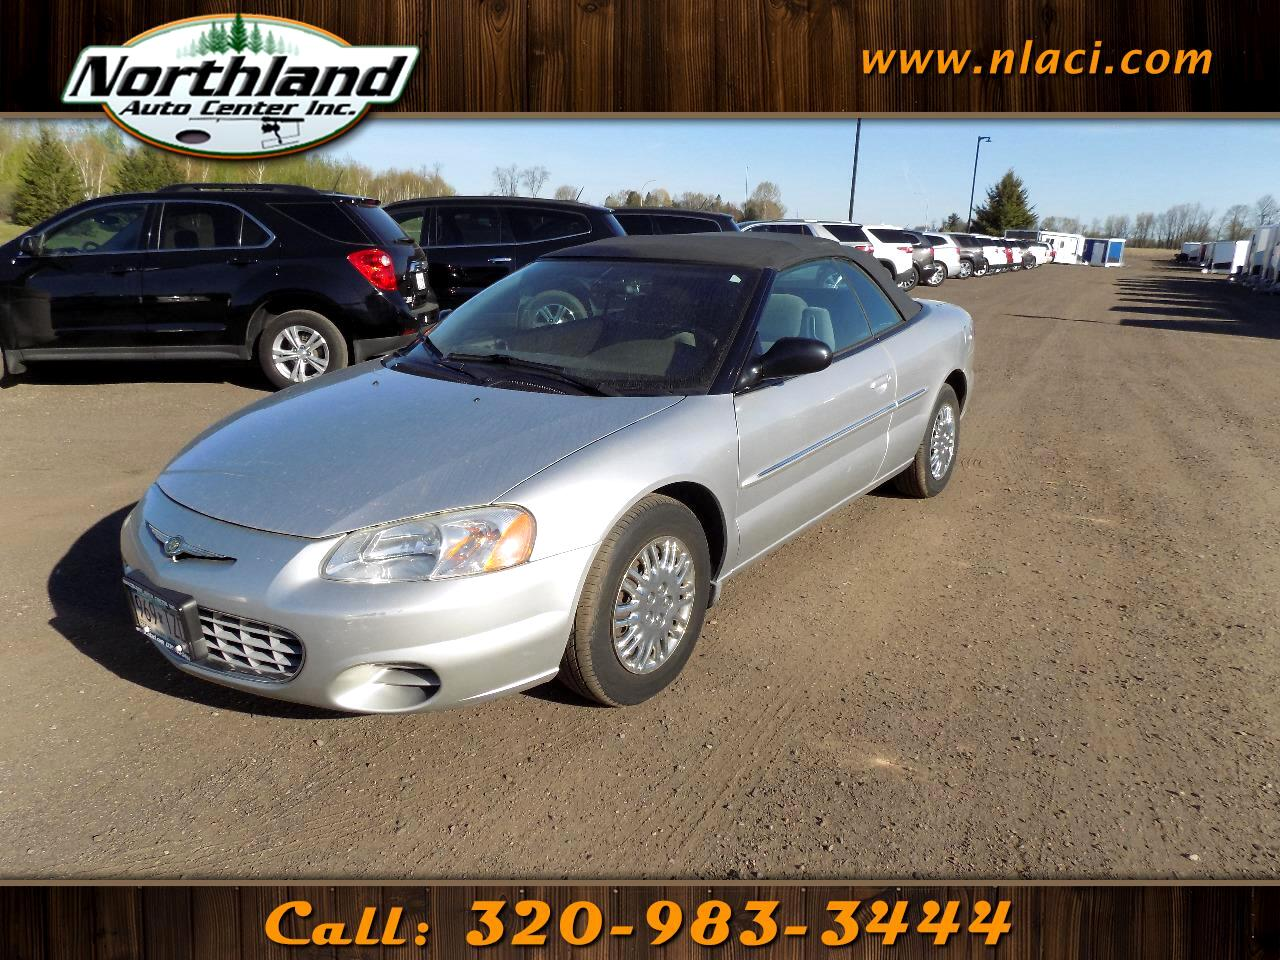 2002 Chrysler Sebring 2dr Convertible LX